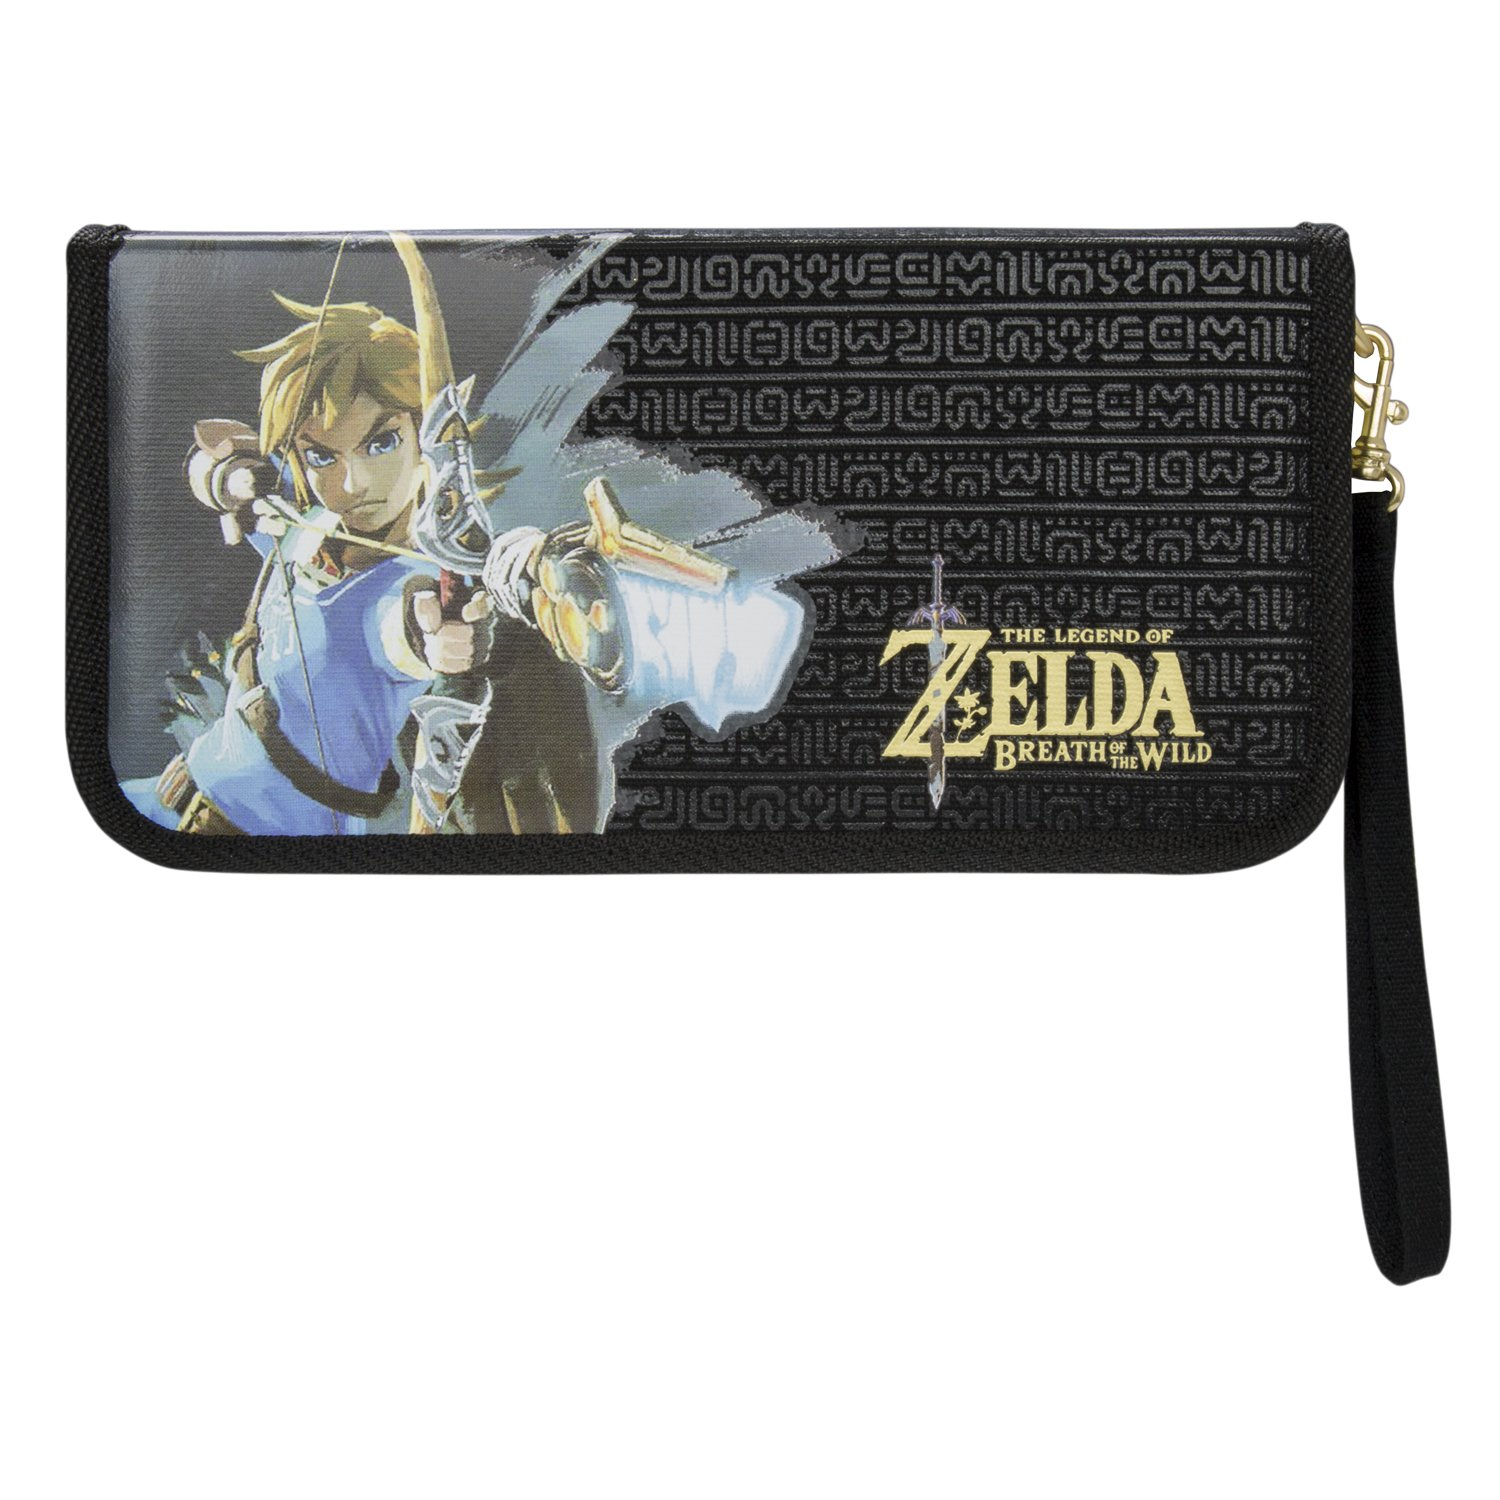 PDP Nintendo Switch Zelda Breath of the Wild Premium Travel Case for Console and Games